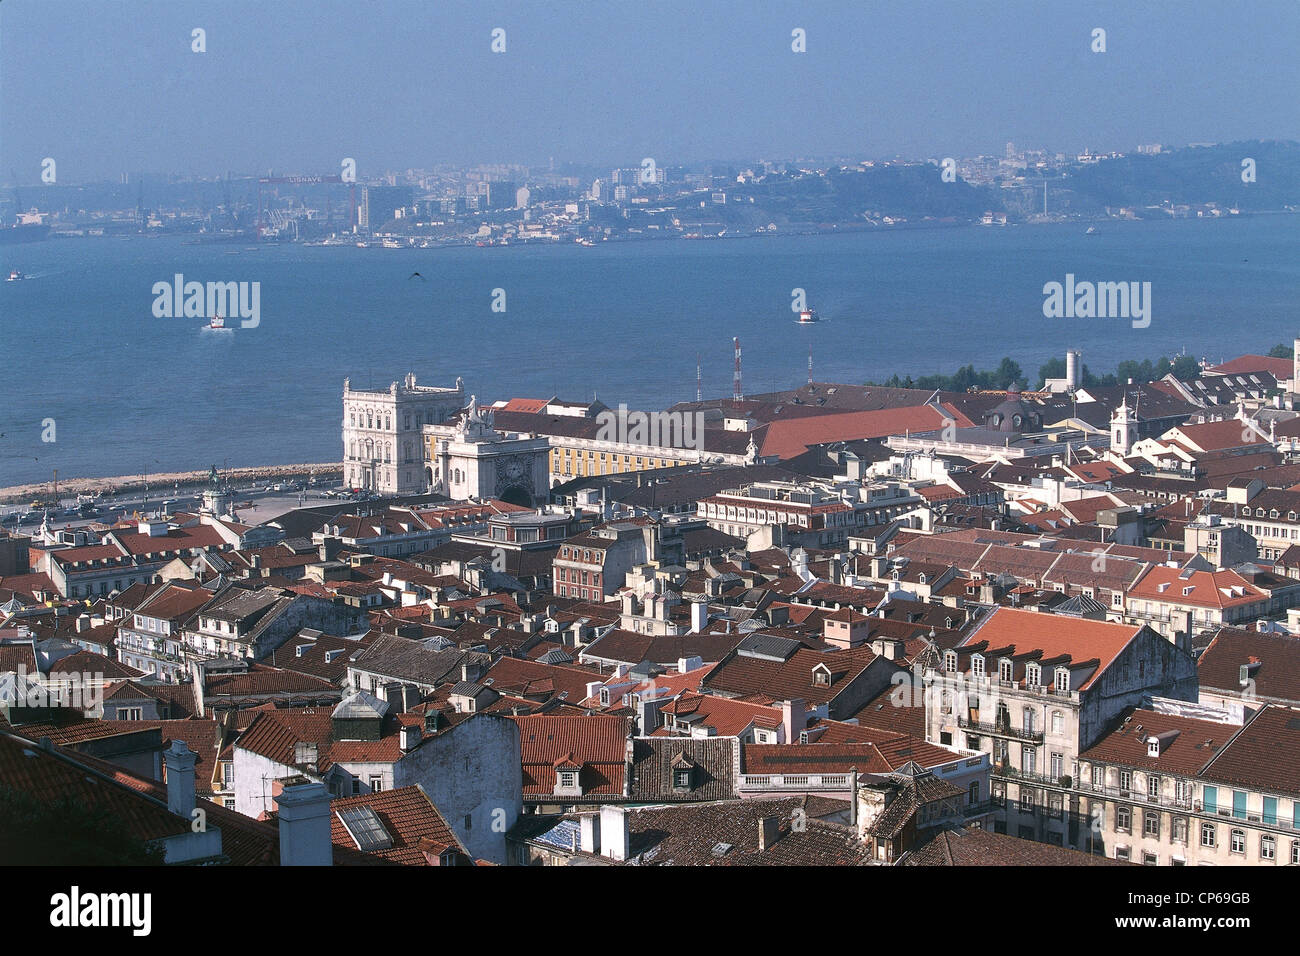 Portugal - Lisbon. View of the mouth of the Tagus from the Castle of St. George (Castelo de Sao Jorge). - Stock Image